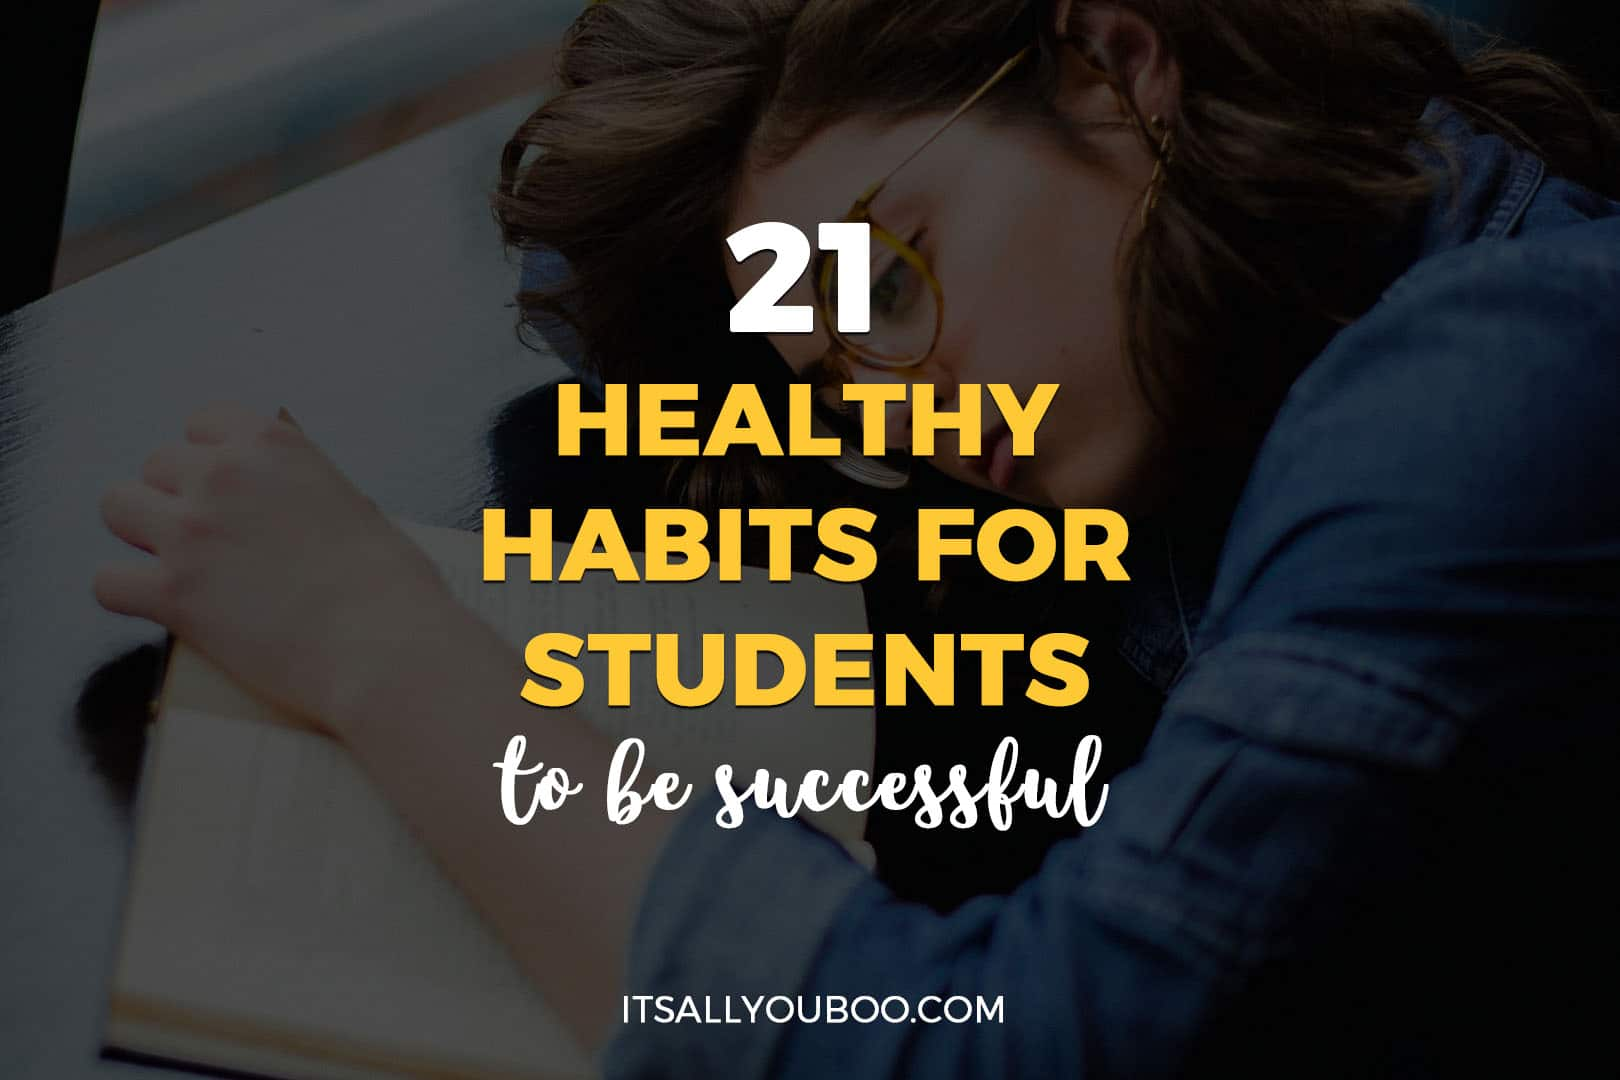 21 Healthy Habits For Students To Be Successful